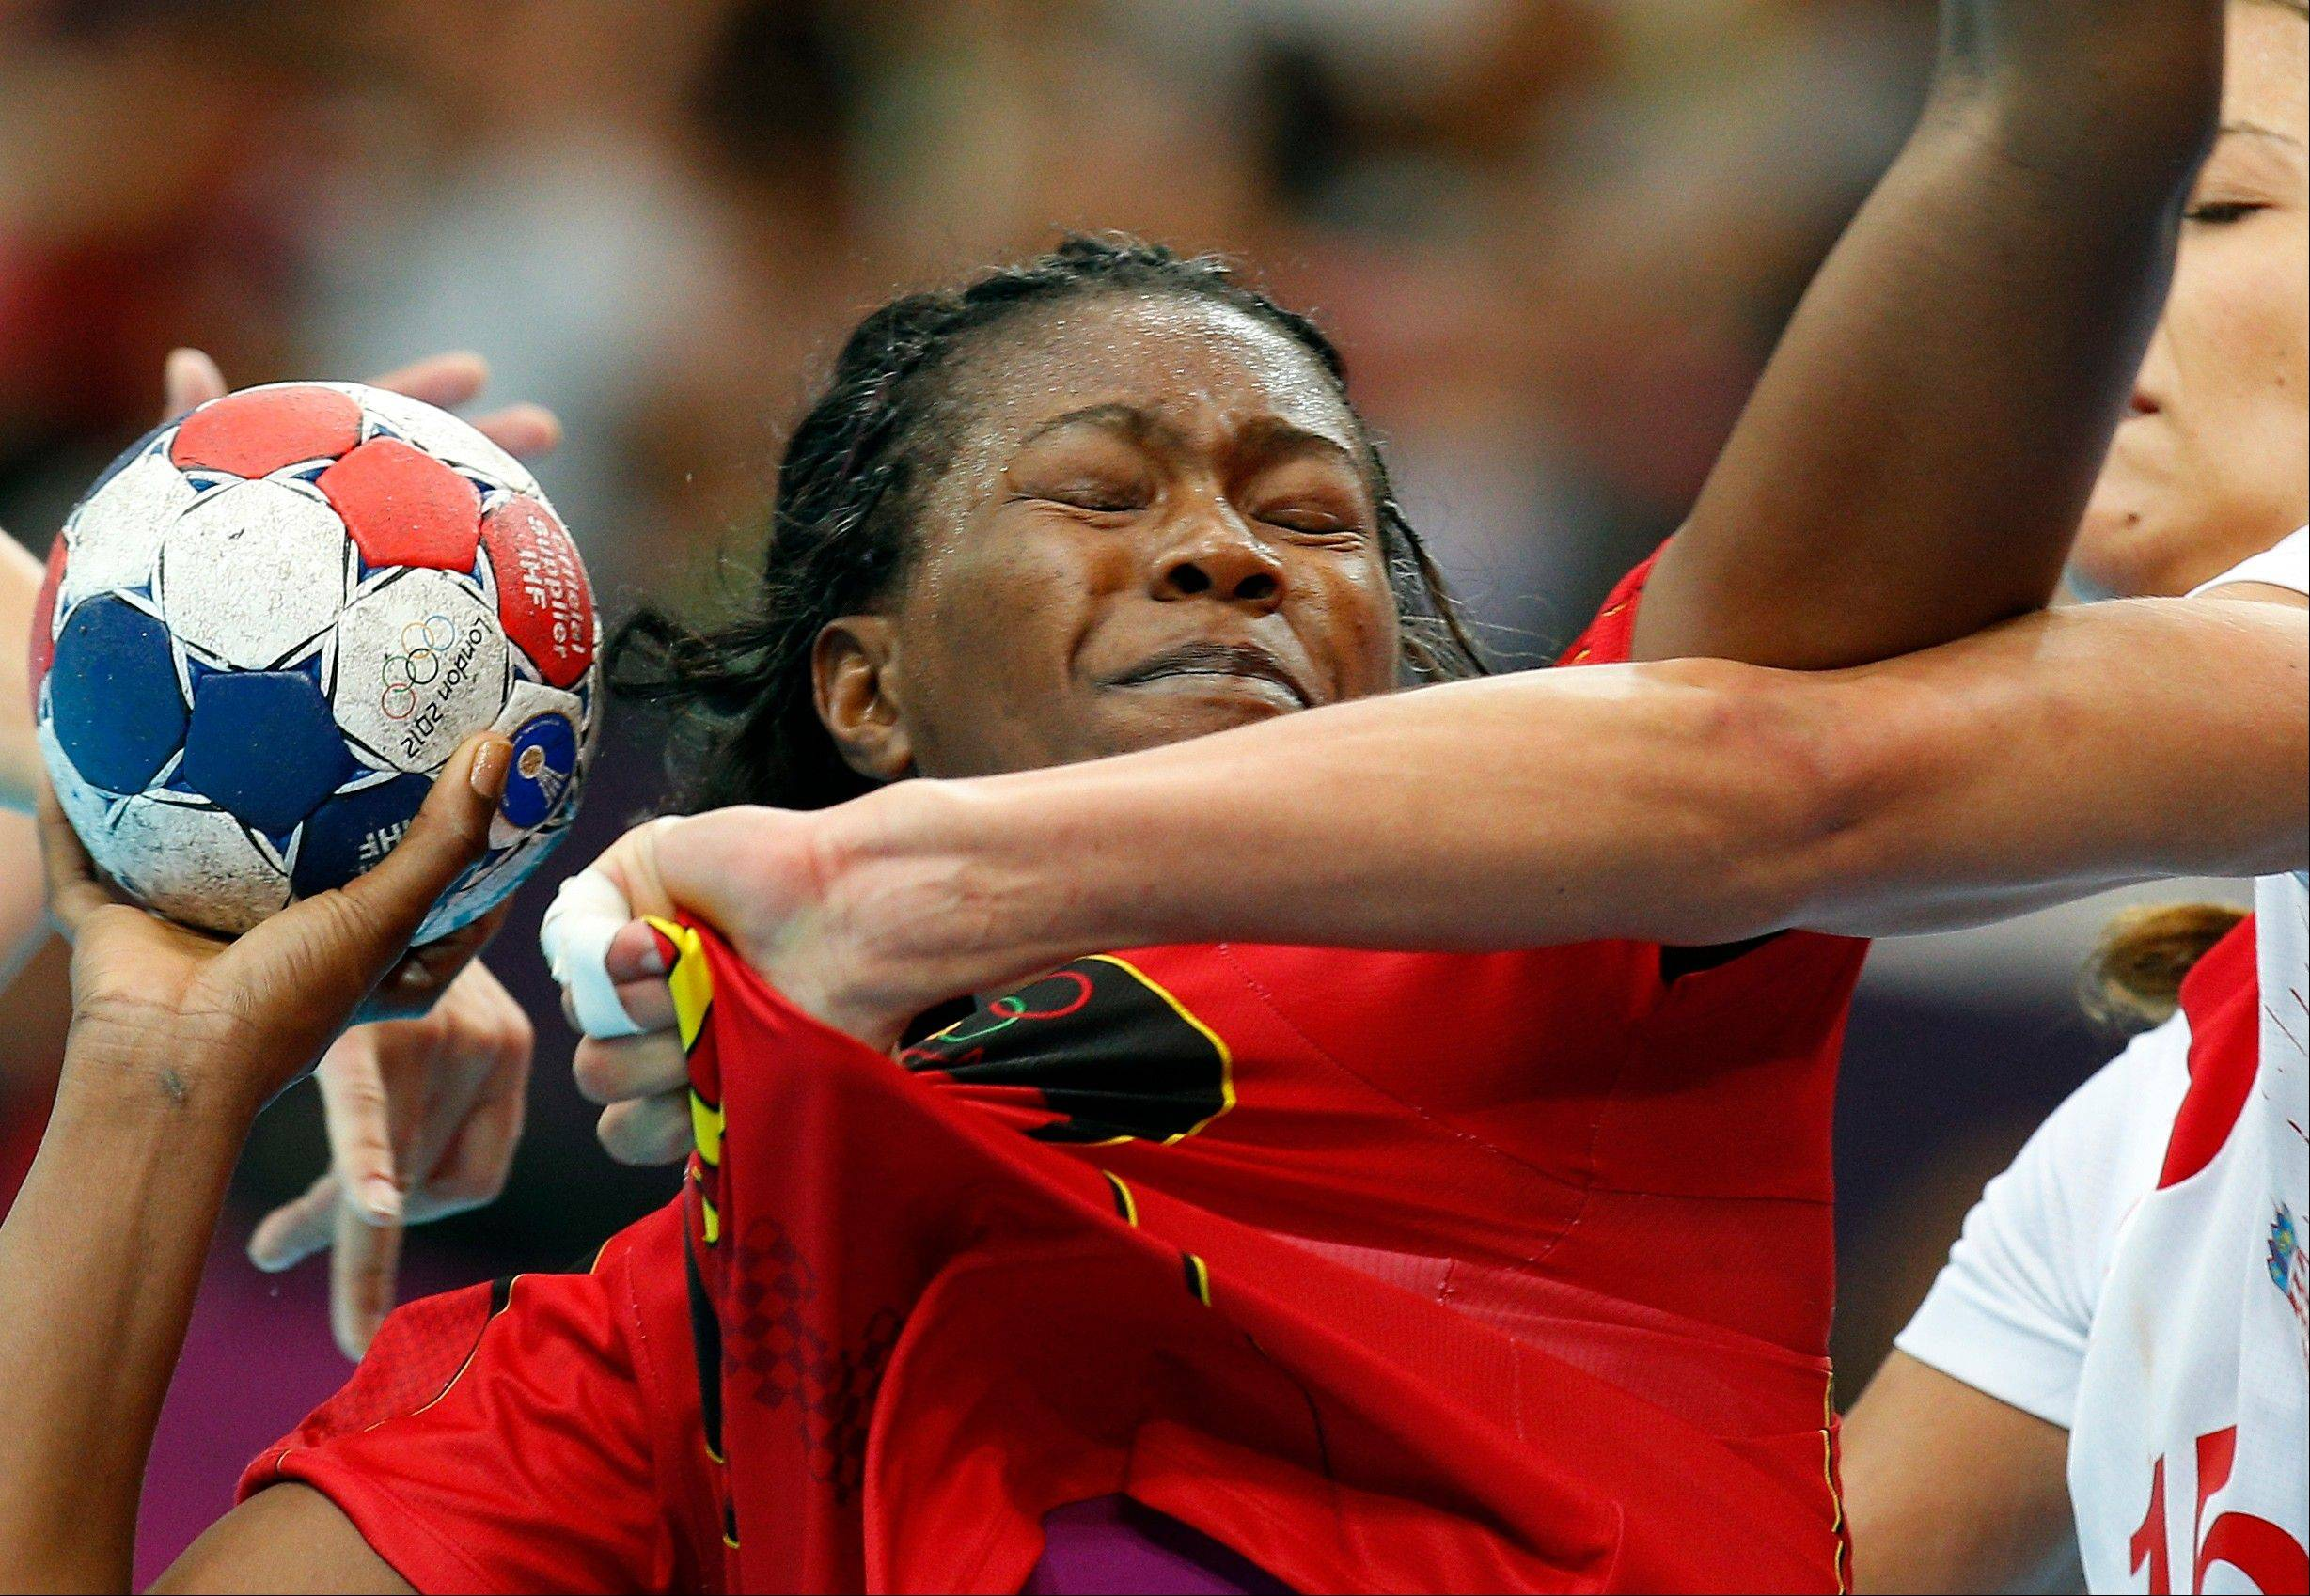 Marcelina Kiala of Angola, left, is challenged by Croatia�s Andrea Penezic during their women�s handball preliminary match at the 2012 Summer Olympics, Monday, July 30, 2012, in London.